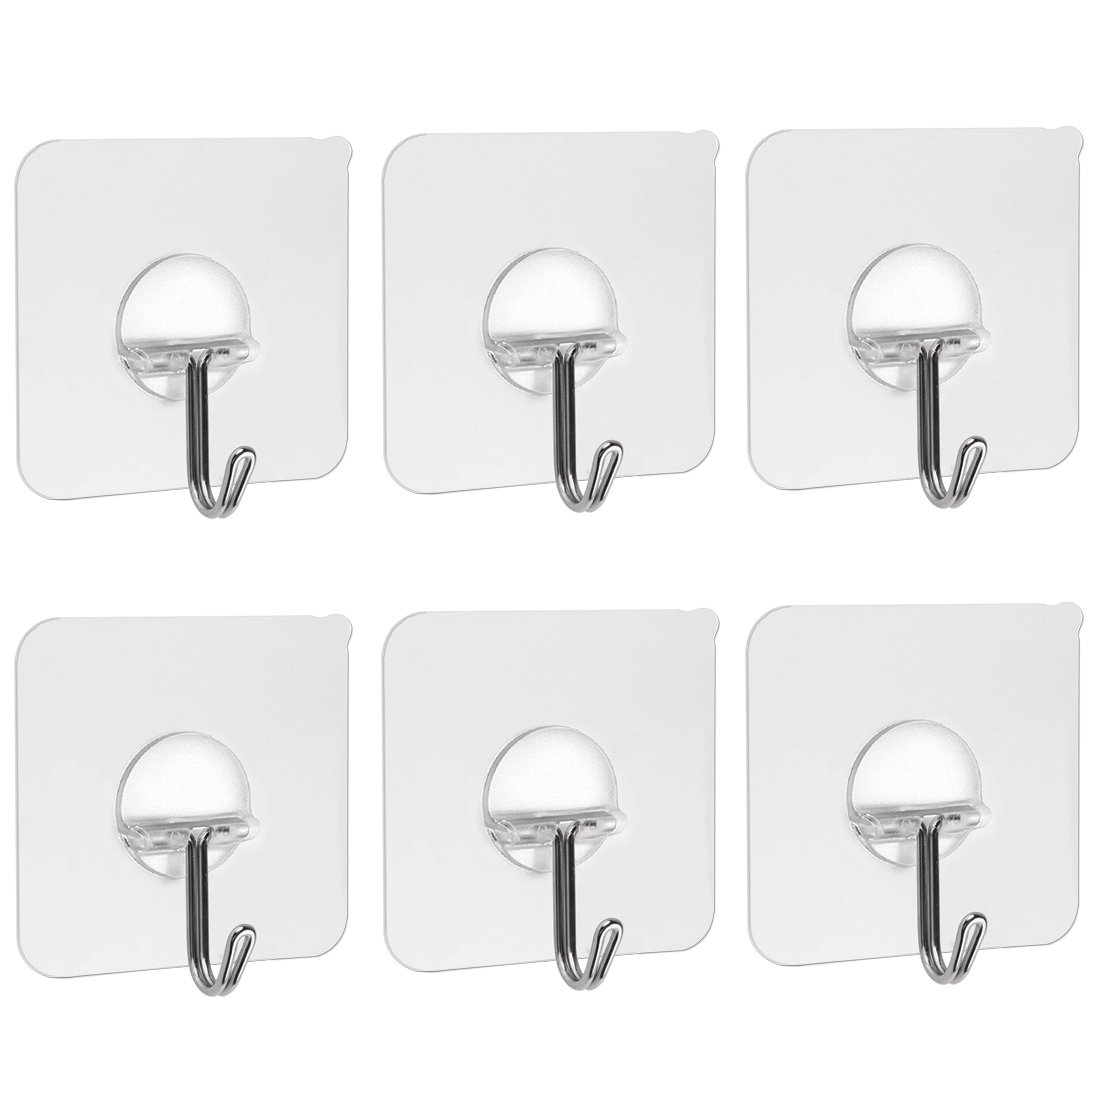 Qliver 13.2lb/6kg(Max) Adhesive Hooks,Nail Free Transparent Reusable Heavy Duty Wall Hooks,No Scratch,Waterproof and Oilproof,Bathroom Kitchen Wall towel hooks, Ceiling Hanger(6PACK)